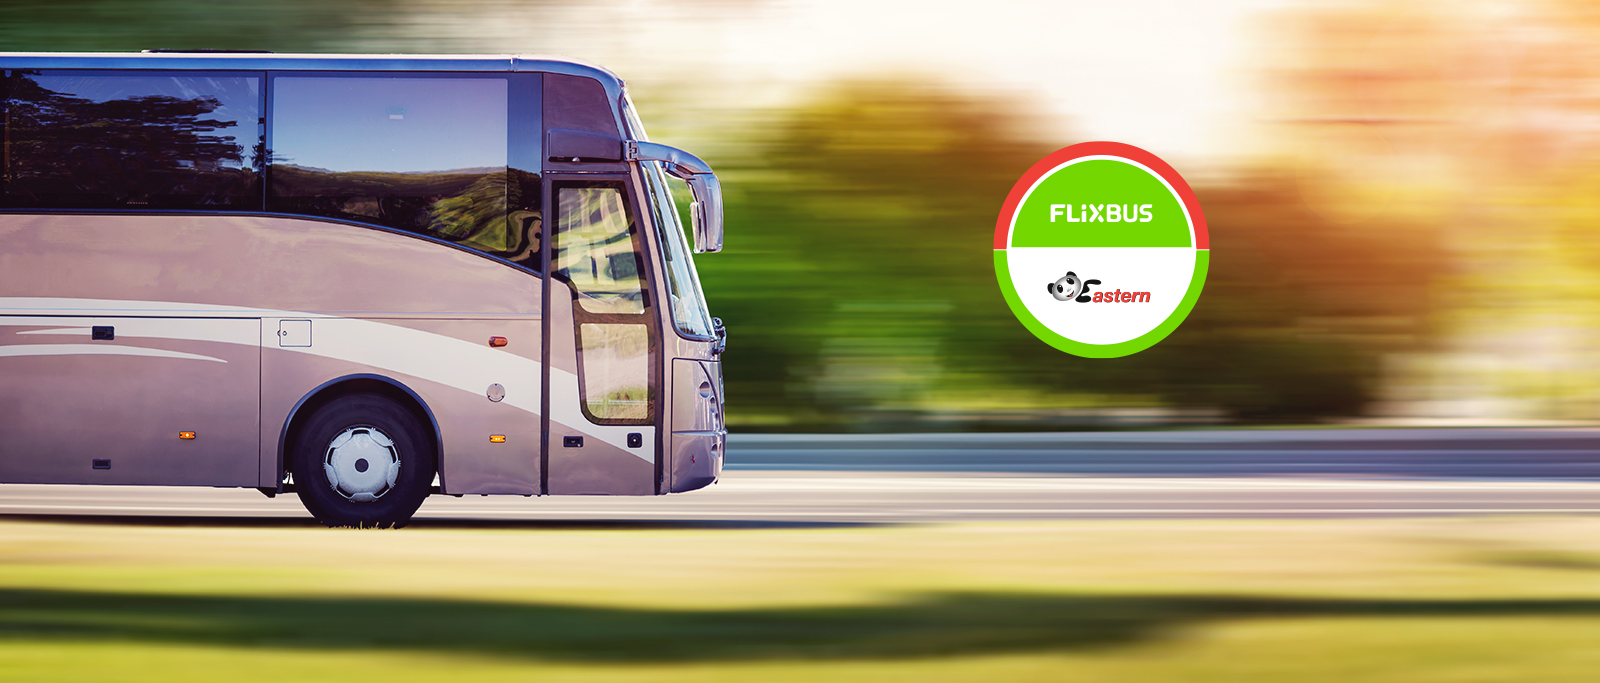 Eastern Bus is now a part of FlixBus